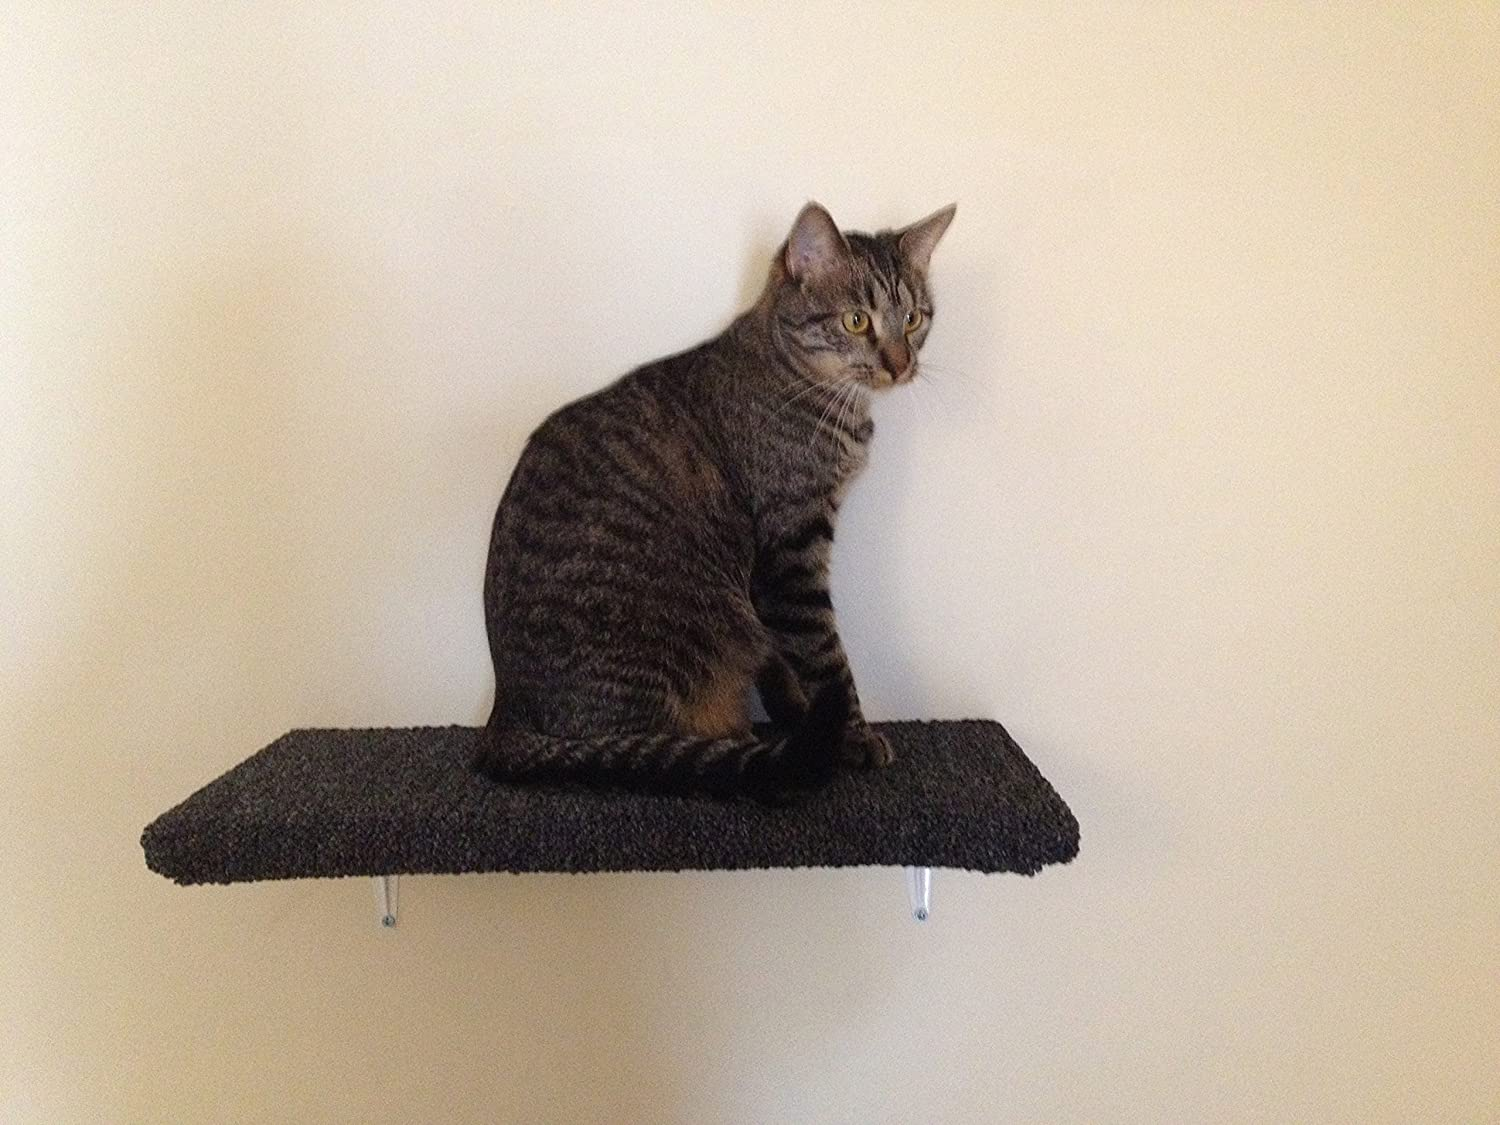 wall shelves for cats to climb on. Black Bedroom Furniture Sets. Home Design Ideas